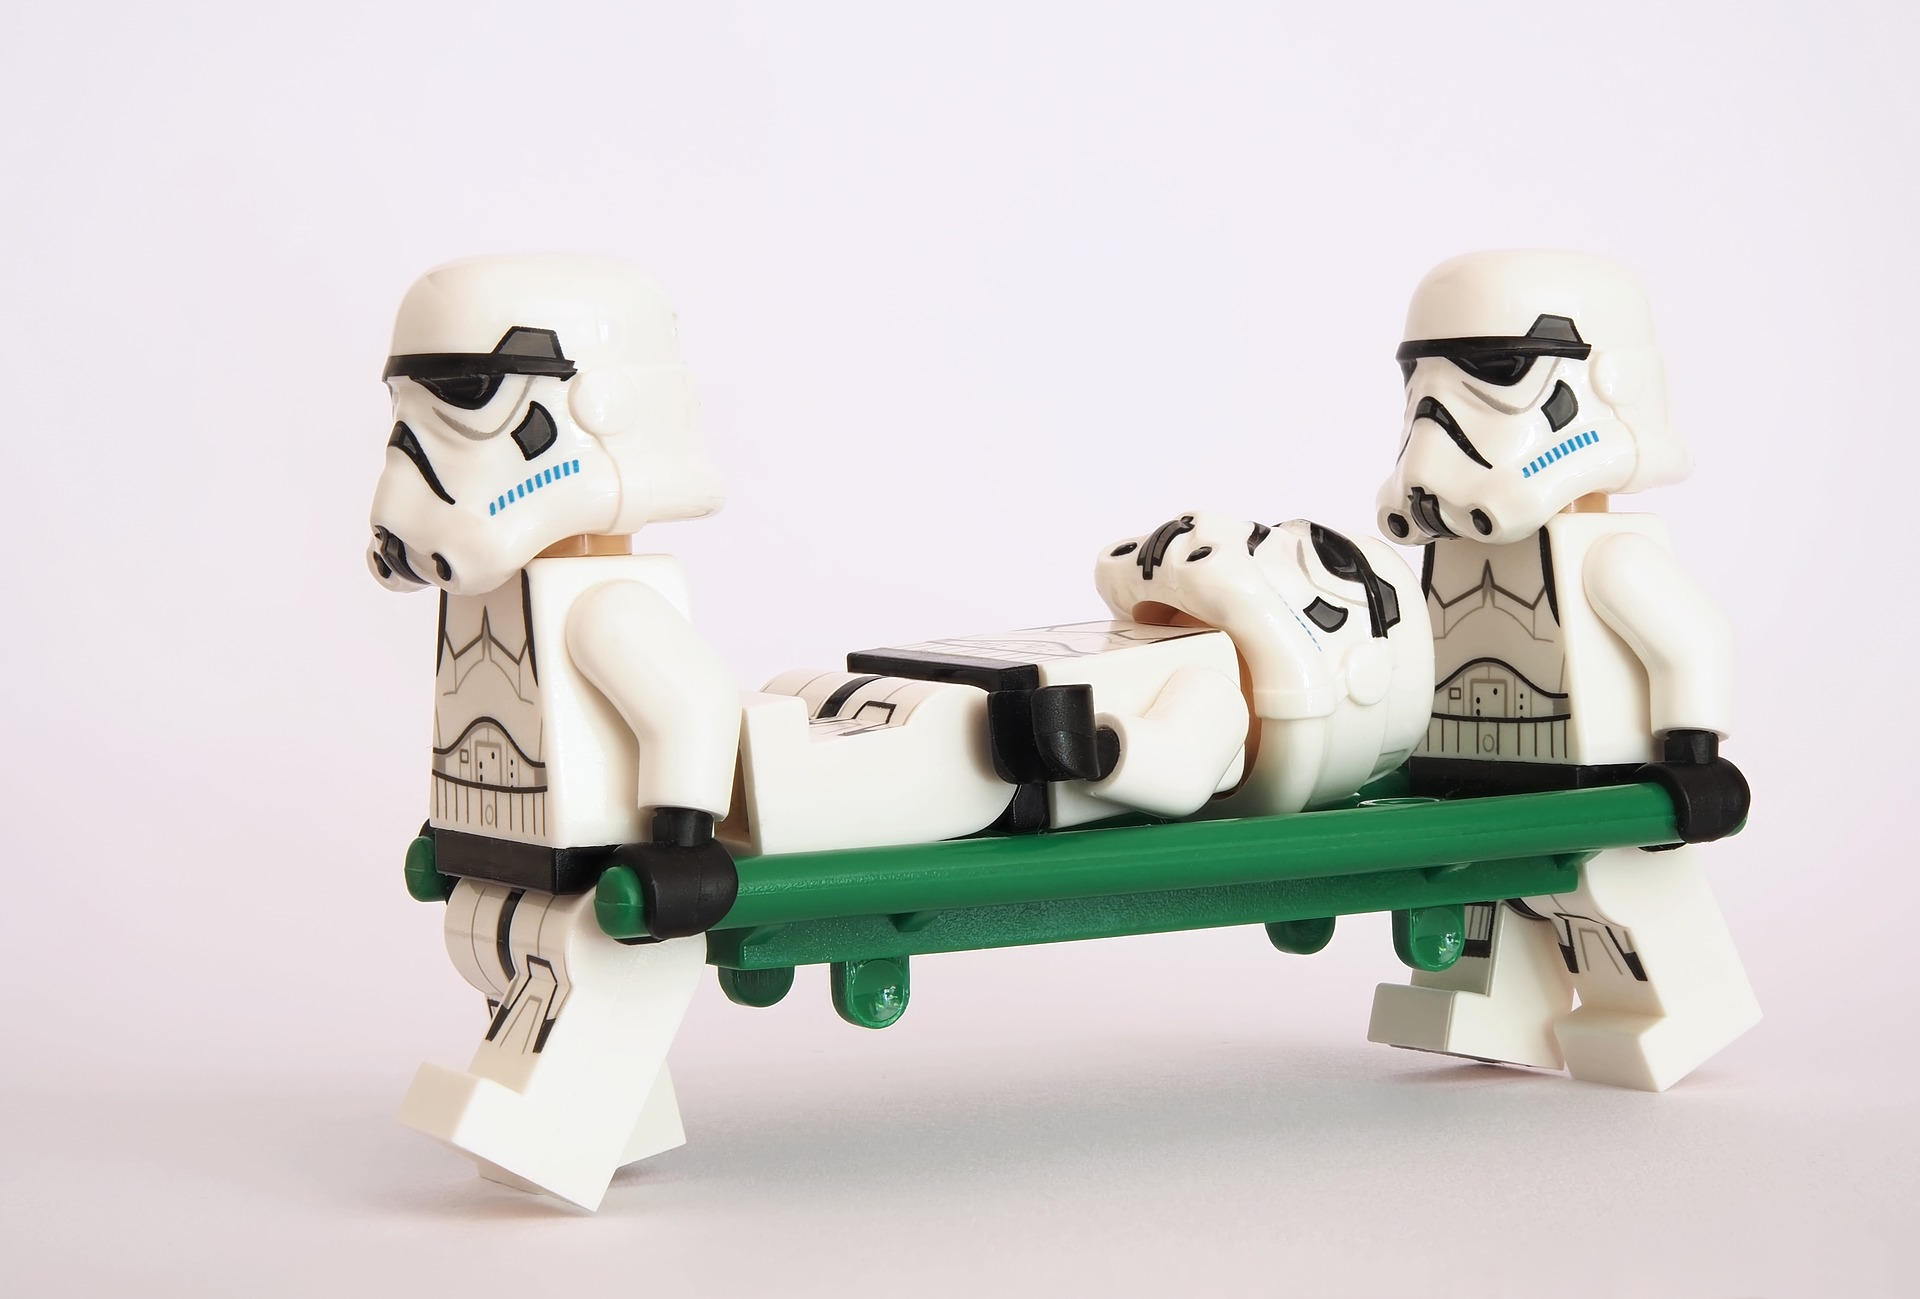 Lego Stormtroopers with a stretcher